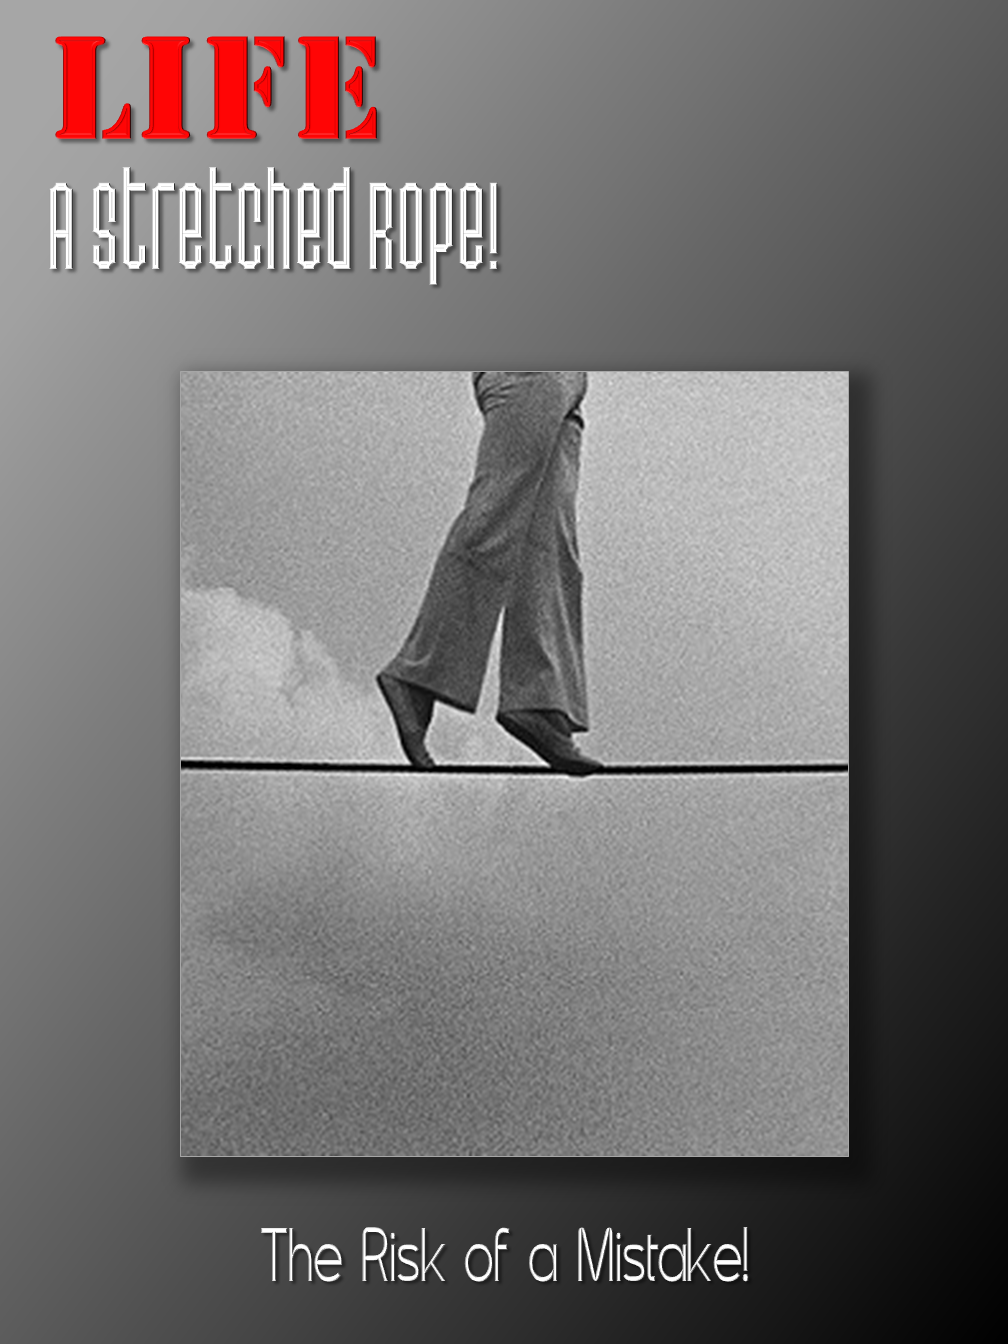 LIFE:A stretched rope!